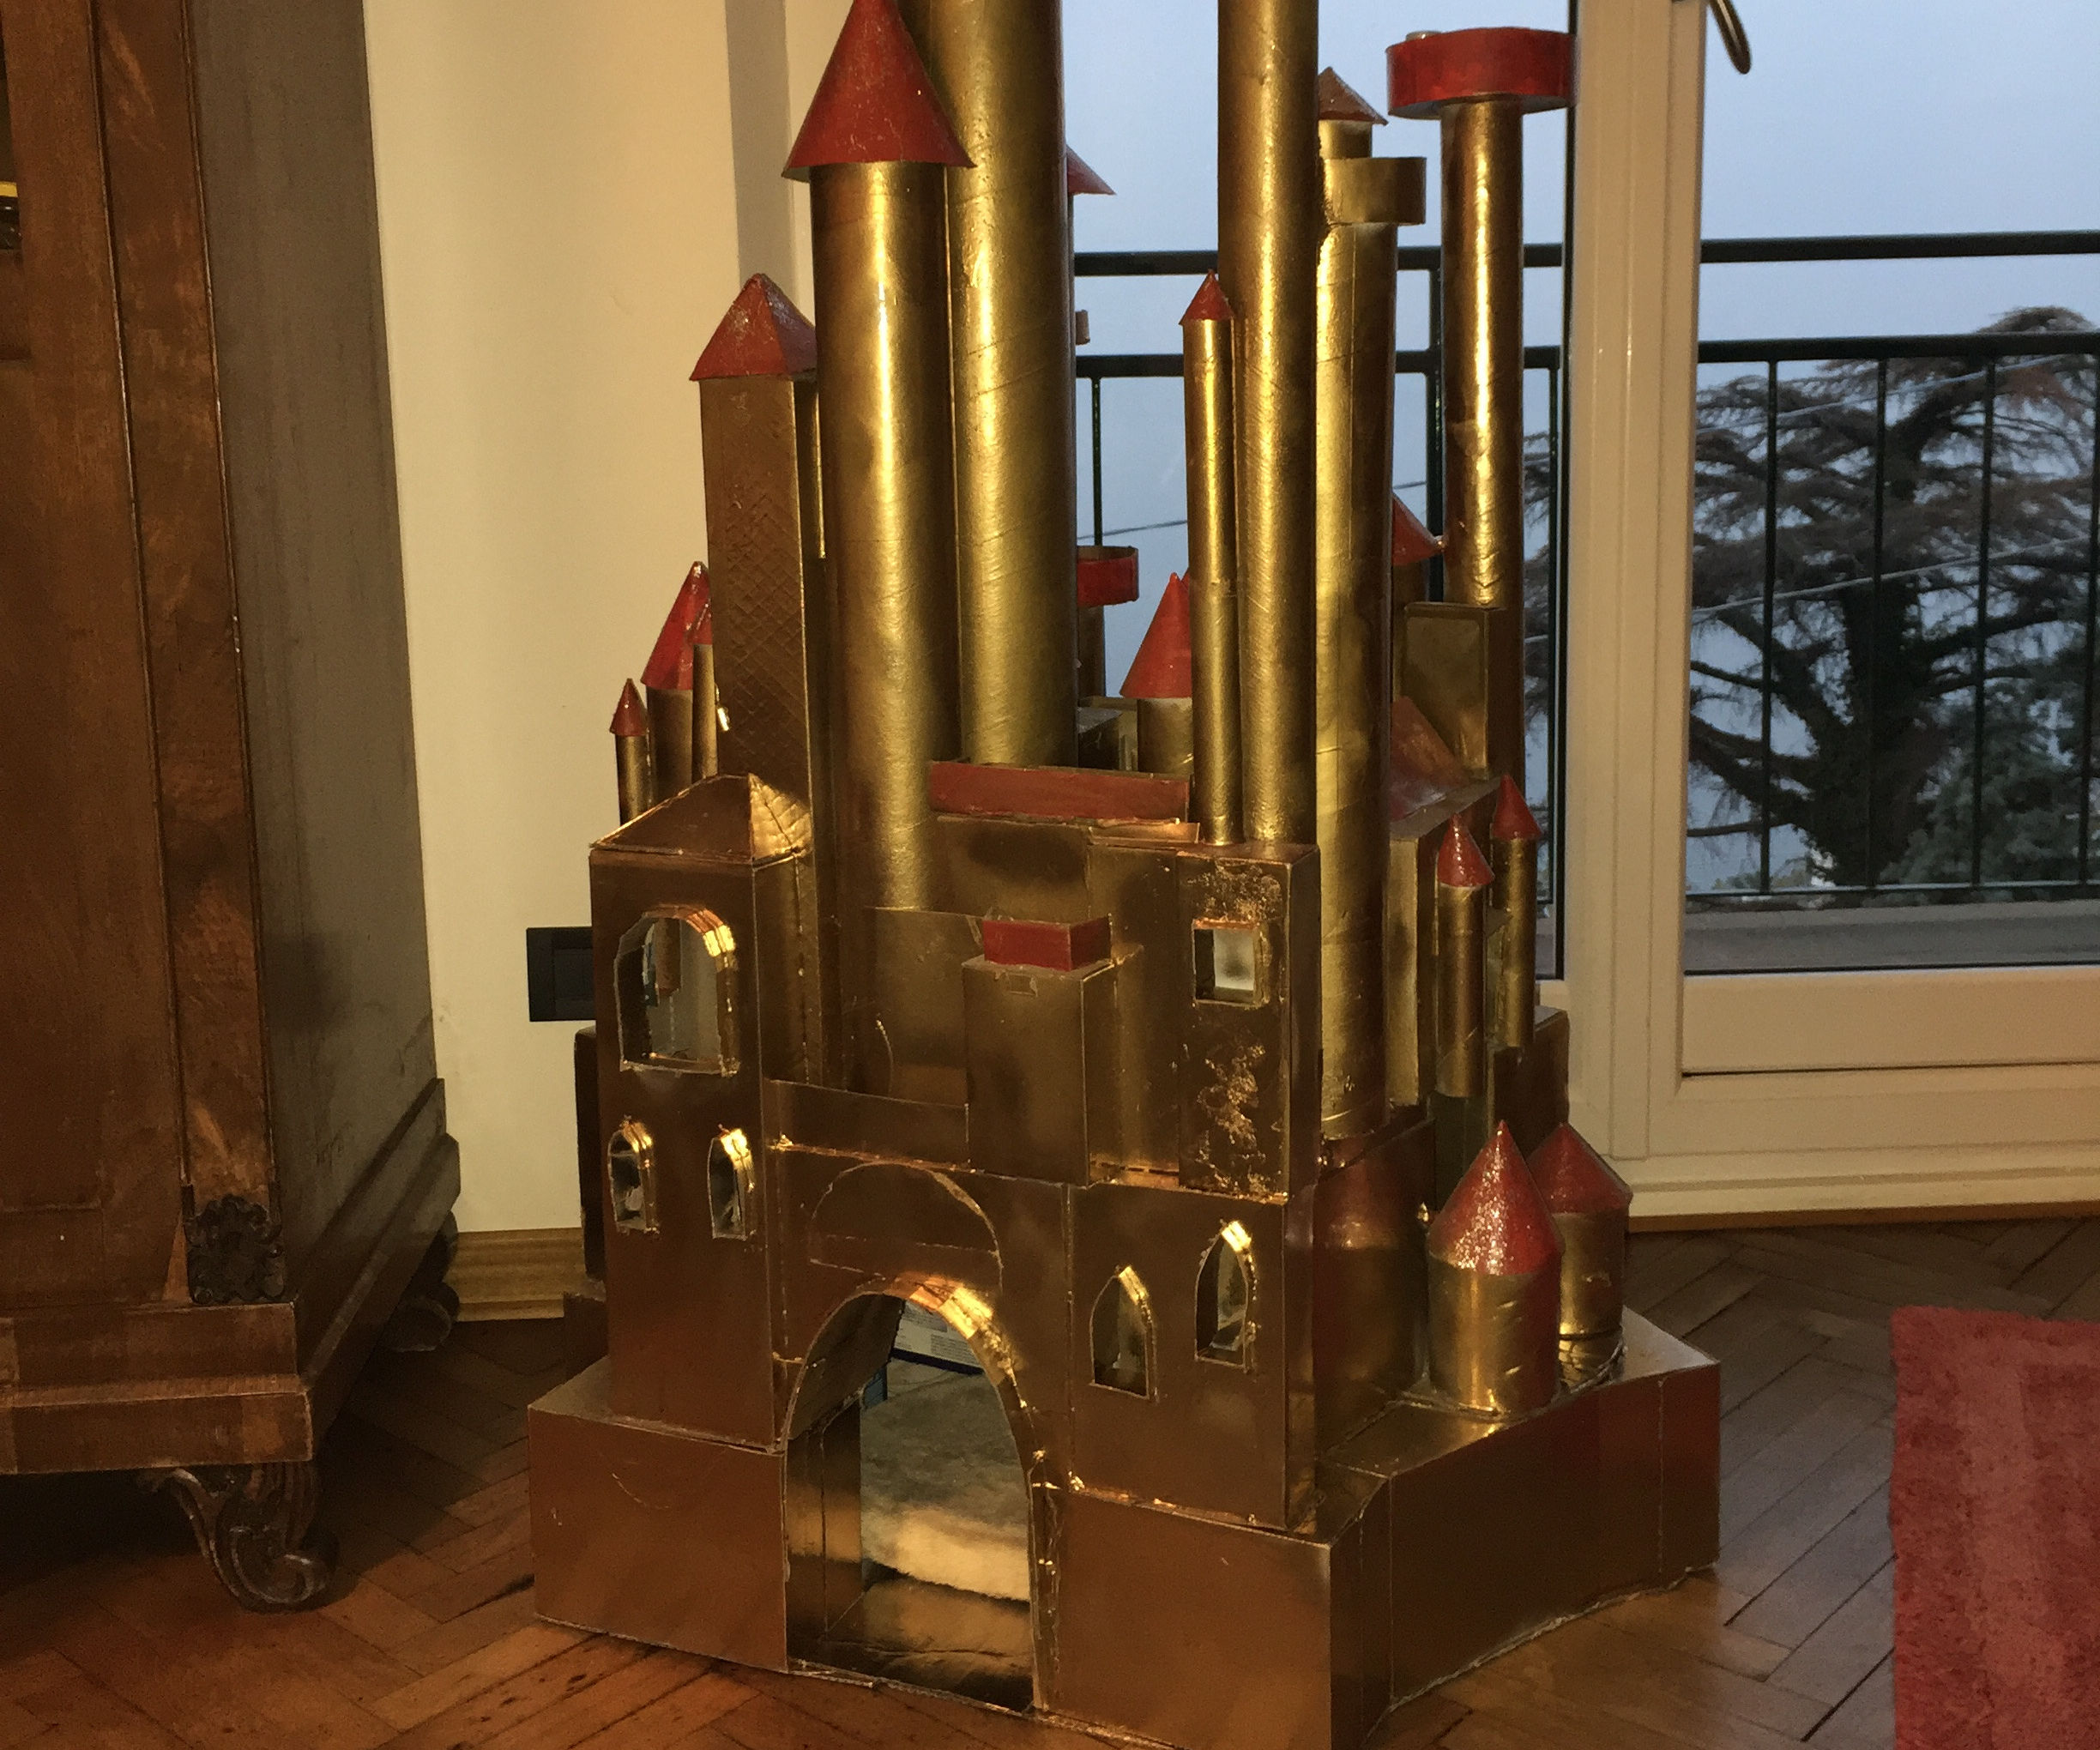 From a Castle Toy to a Imperial Kitty House